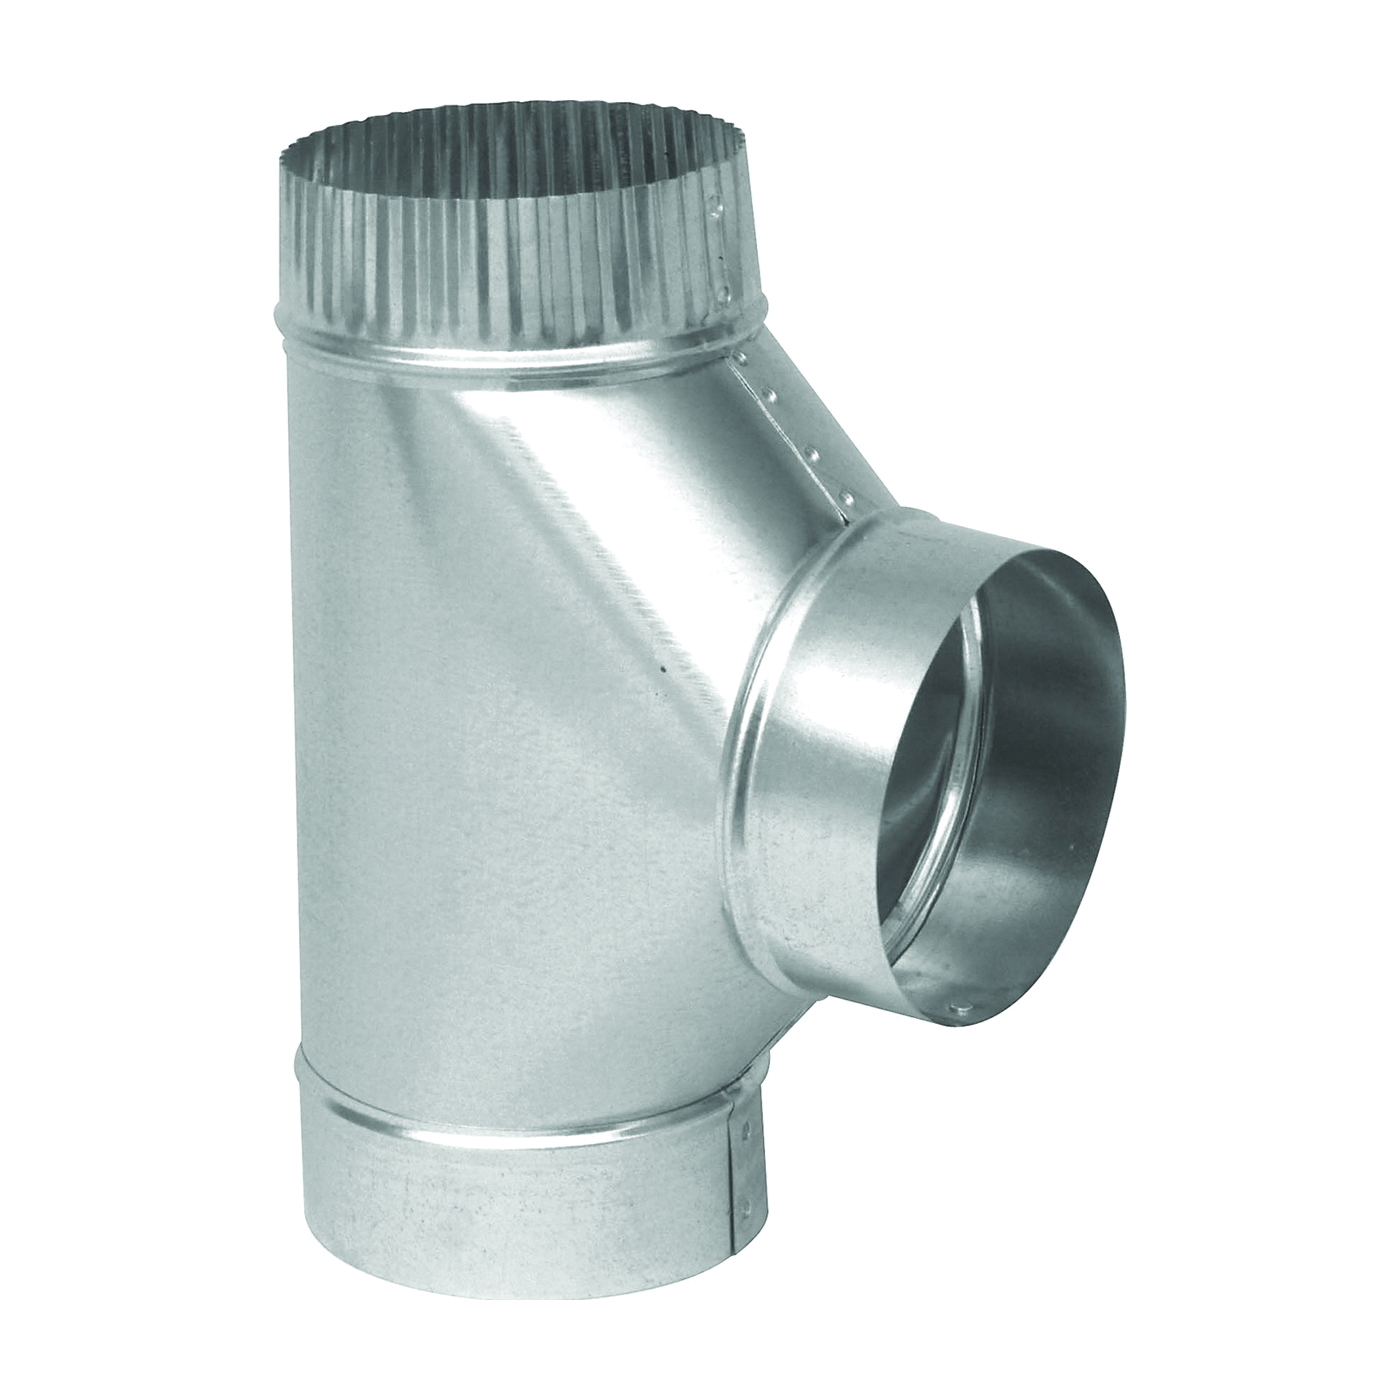 Picture of Imperial GV0899 Tee, 8 in, 26 Gauge, Galvanized Steel